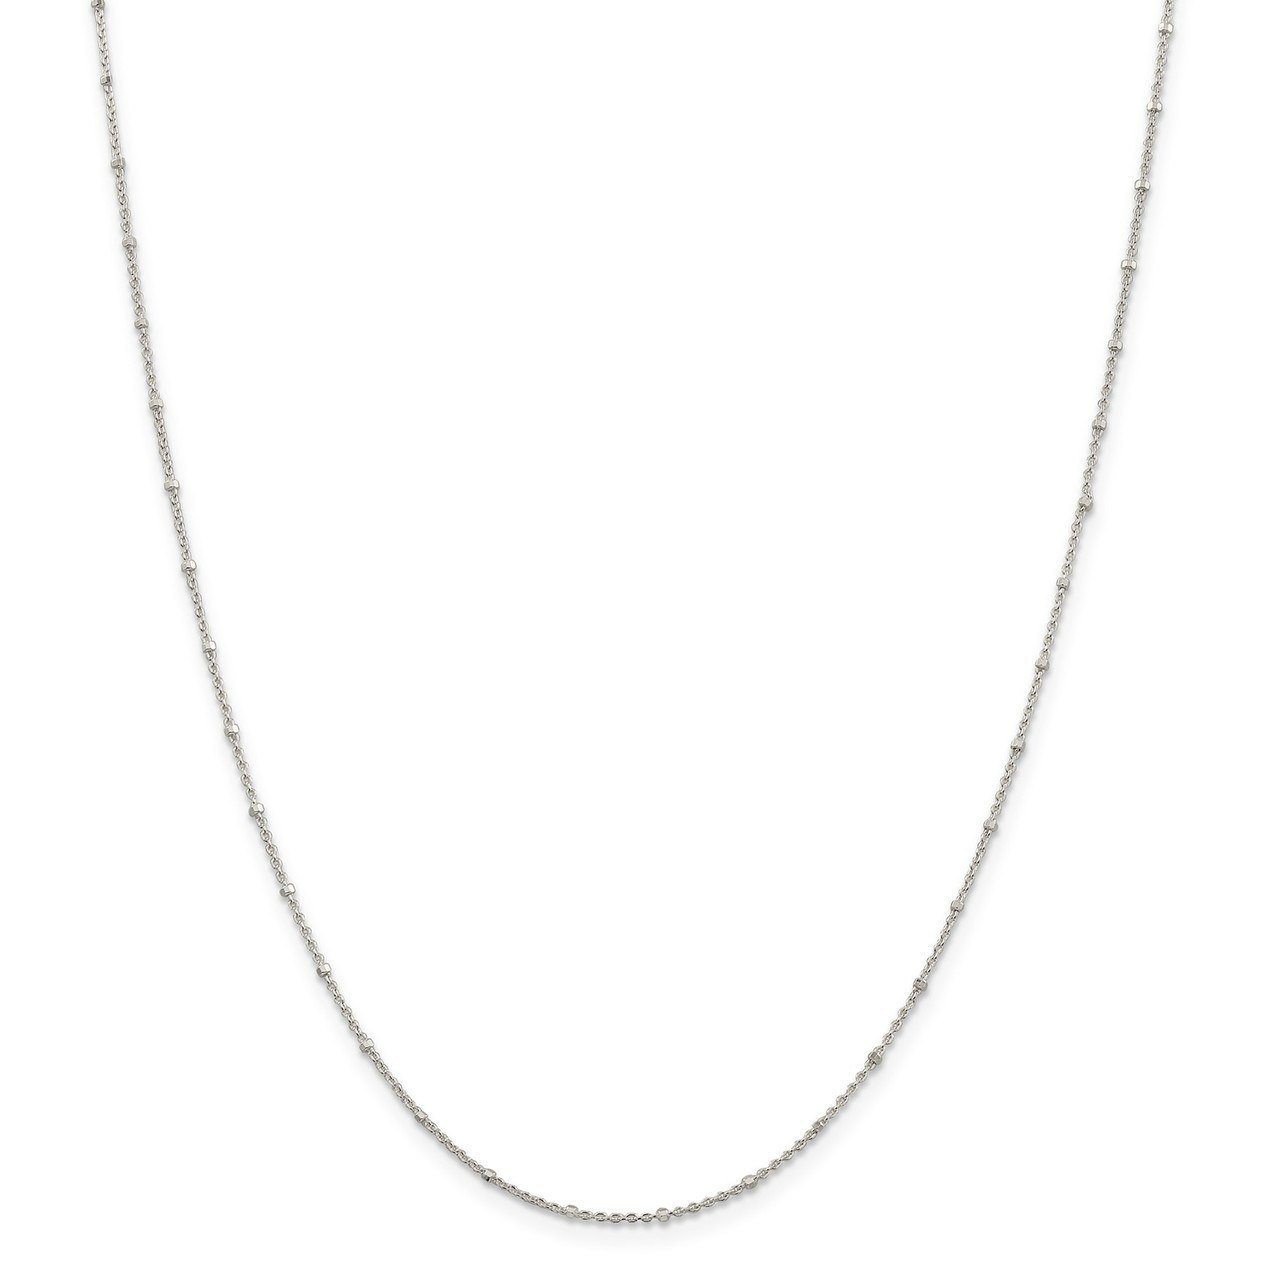 Lex /& Lu Sterling Silver 1.25mm Rolo w//Beads Chain Necklace or Anklet